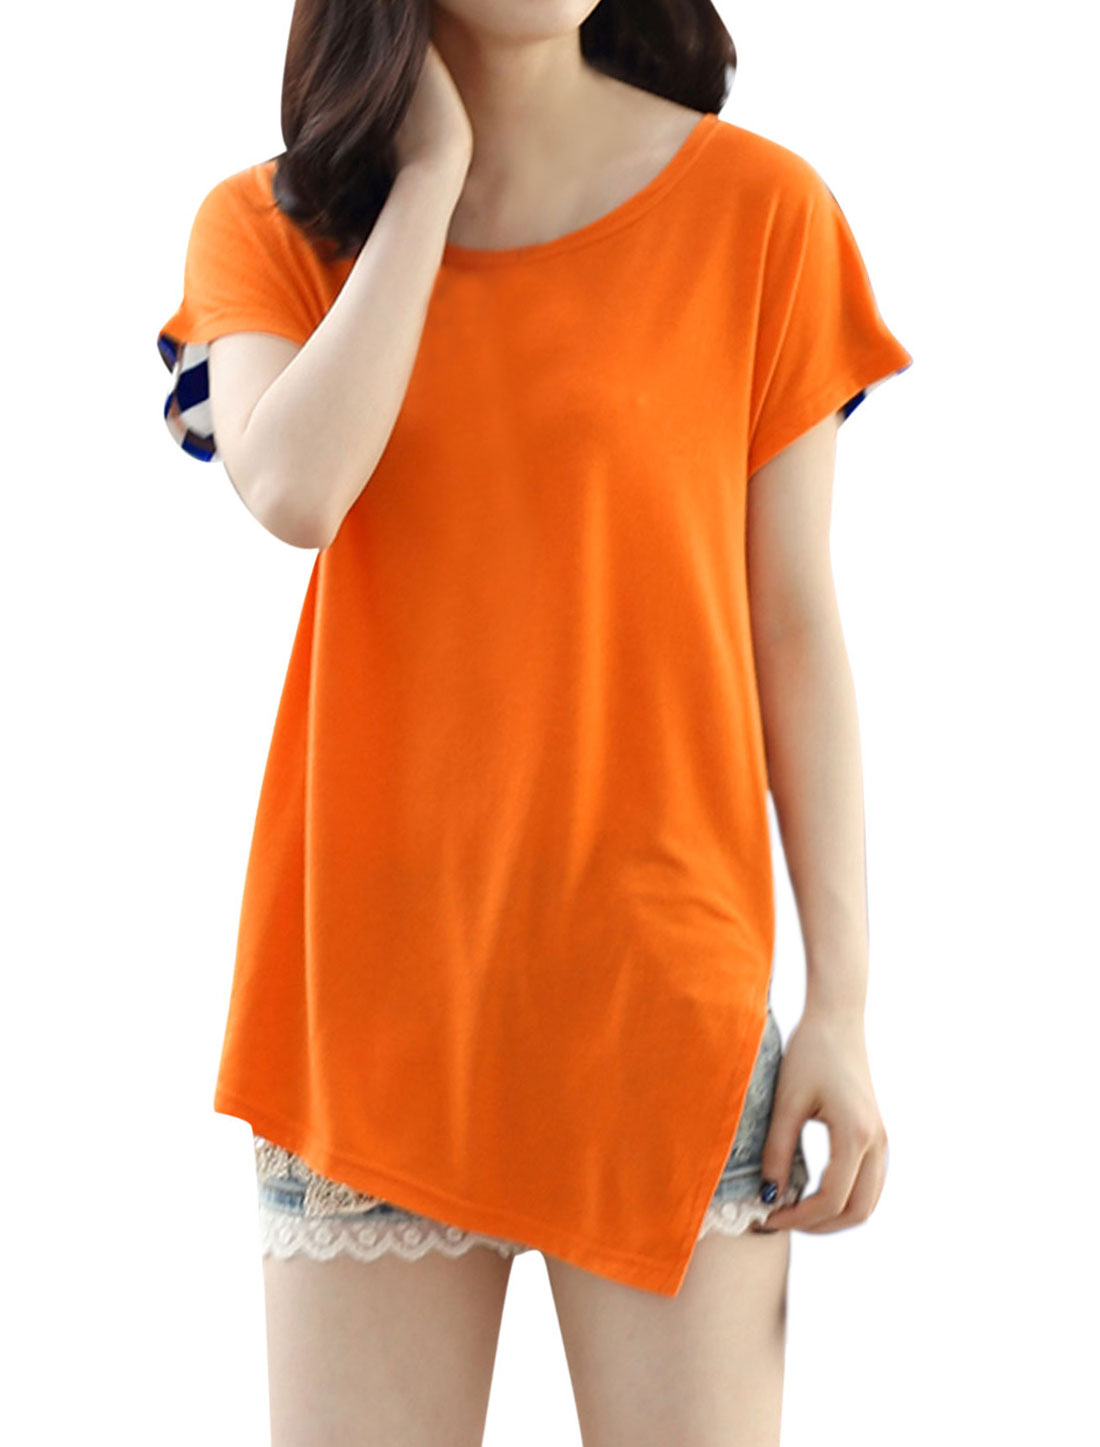 Lady Stripes Back Colorblock Split Side Tunic Tee Orange Blue M